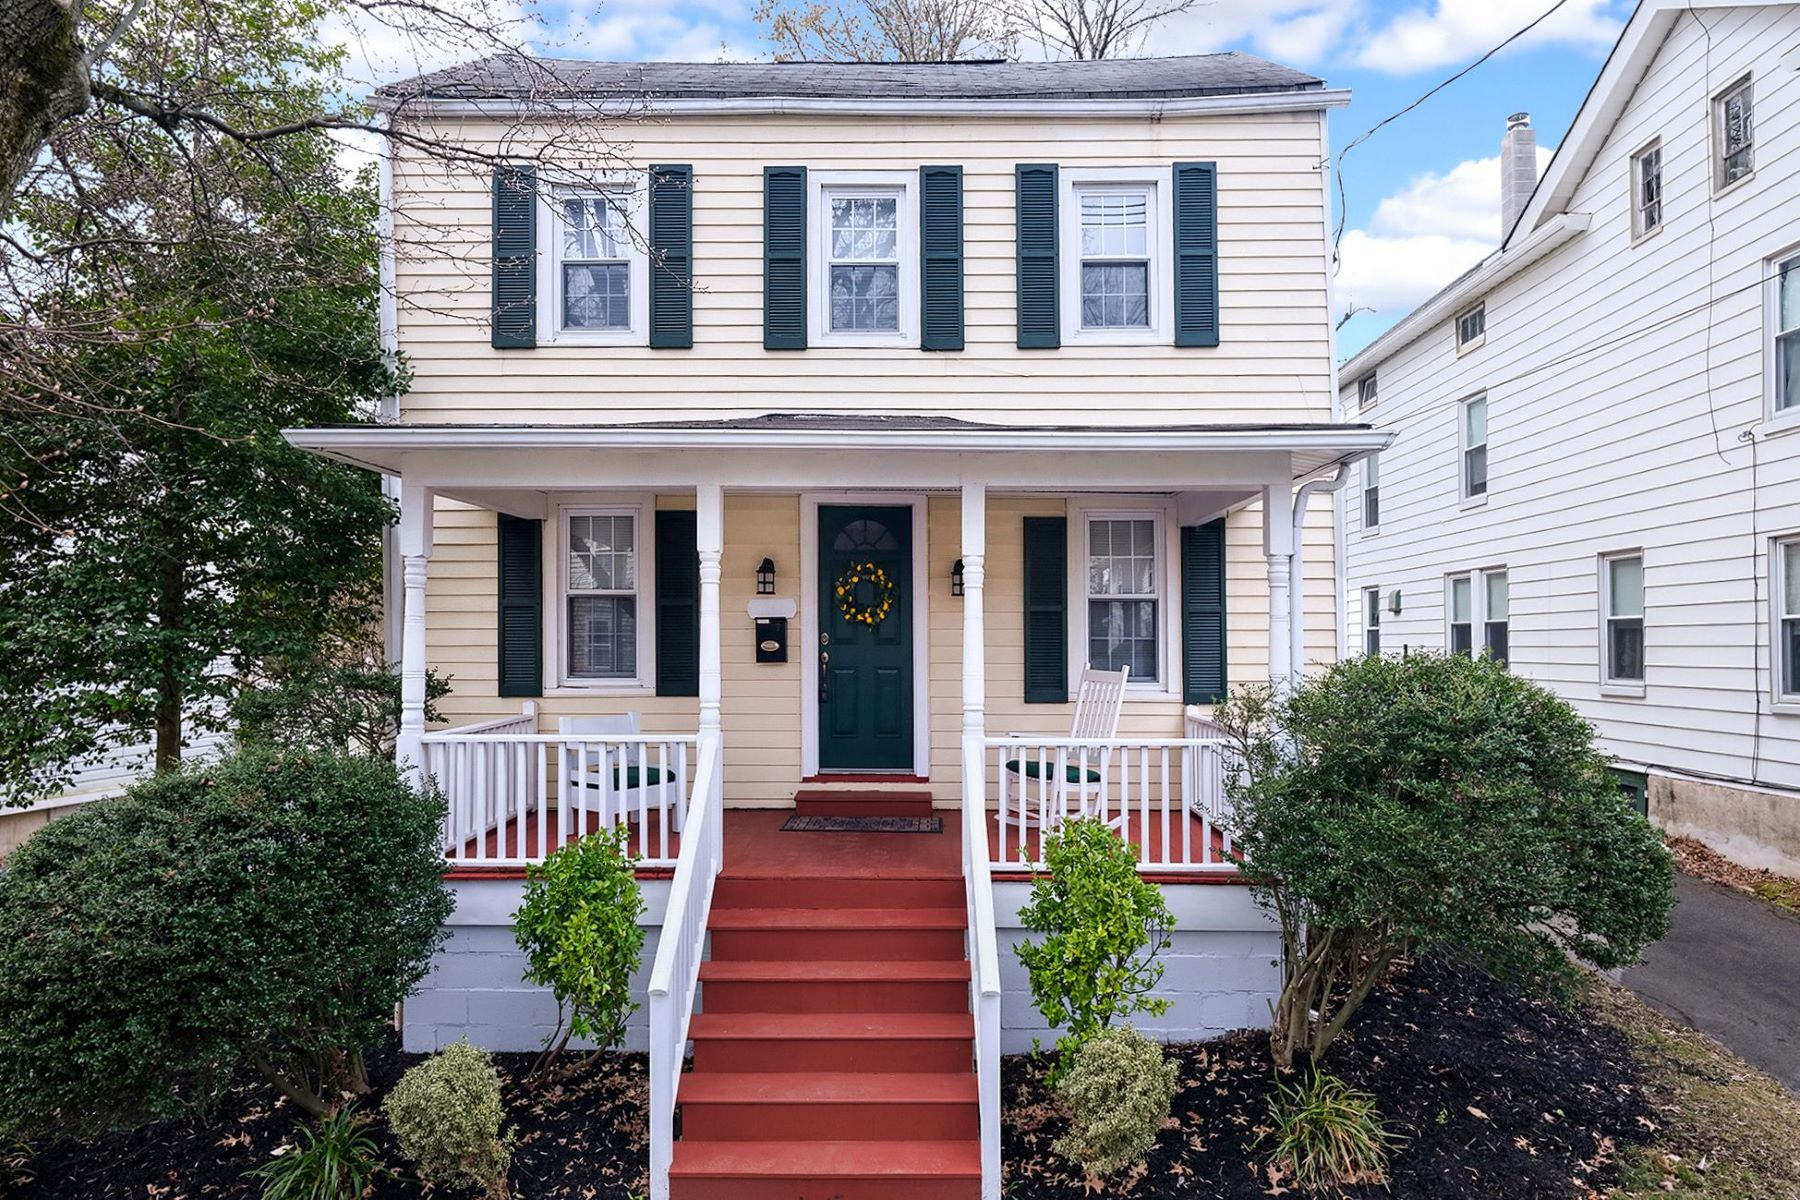 Single Family Homes for Sale at All The Charm of Pennington Borough 218 South Main Street, Pennington, New Jersey 08534 United States